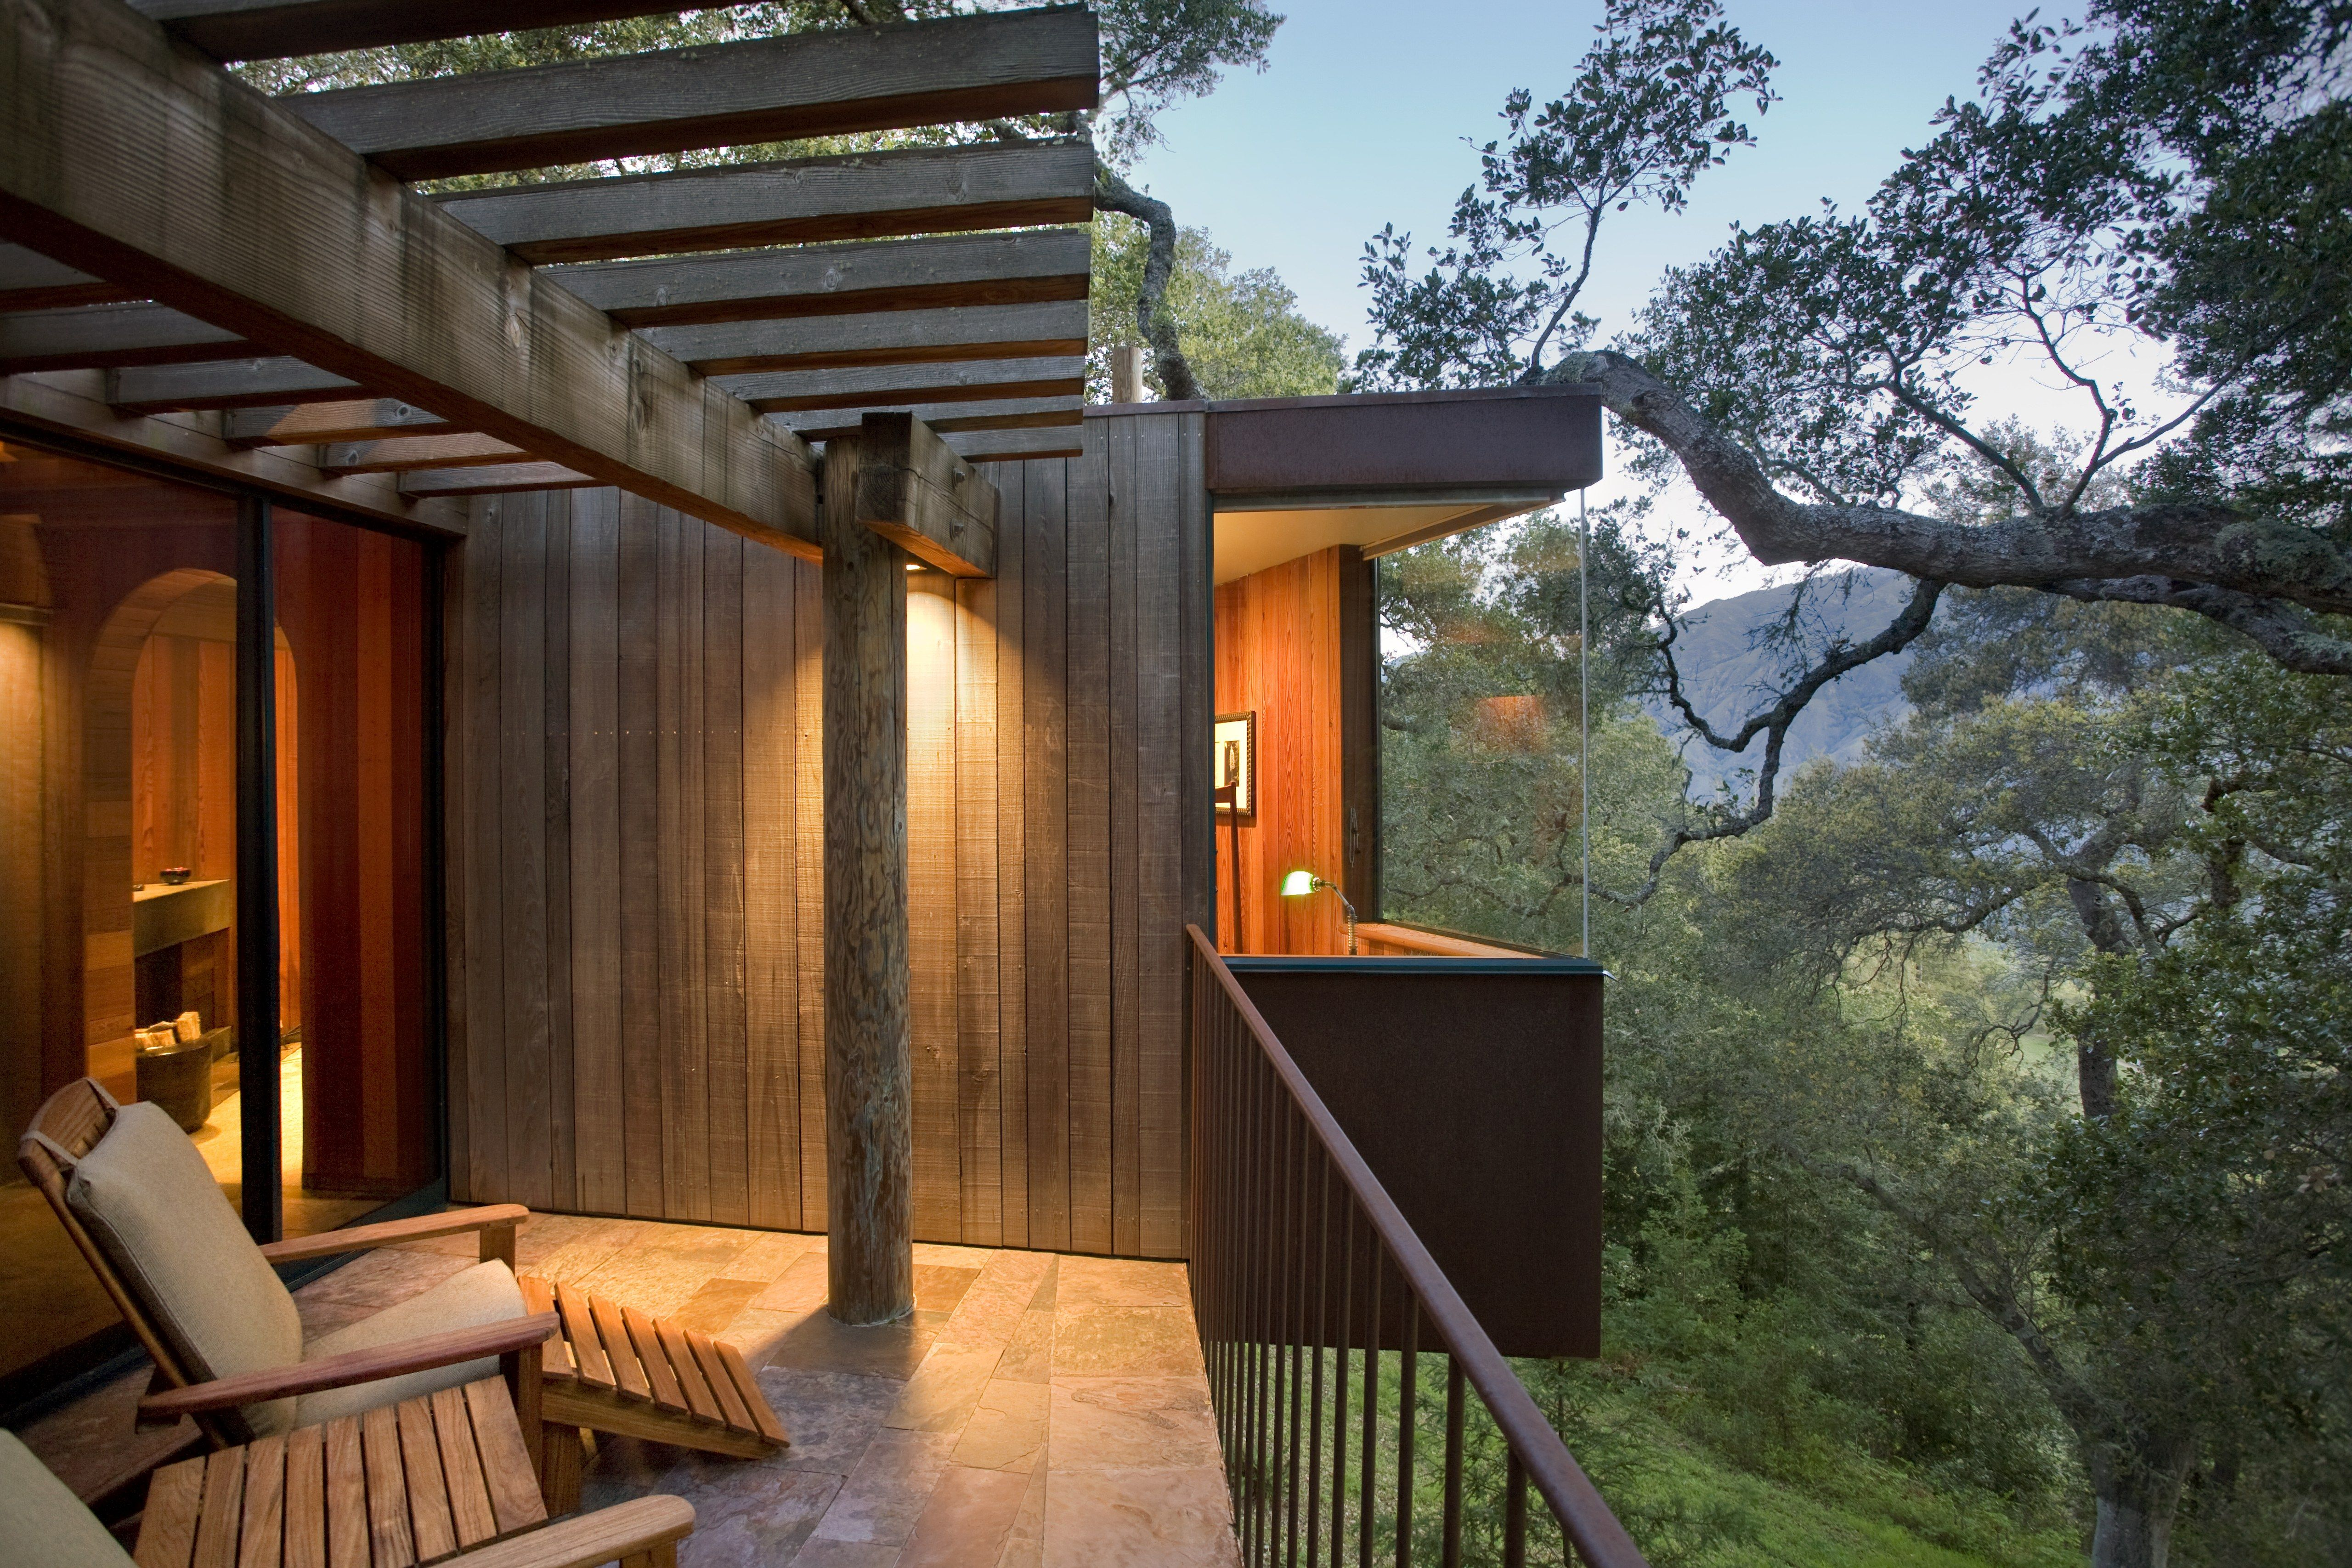 7 treehouse hotels that reach new heights in design post ranch inn 7 treehouse hotels that reach new heights in design sisterspd